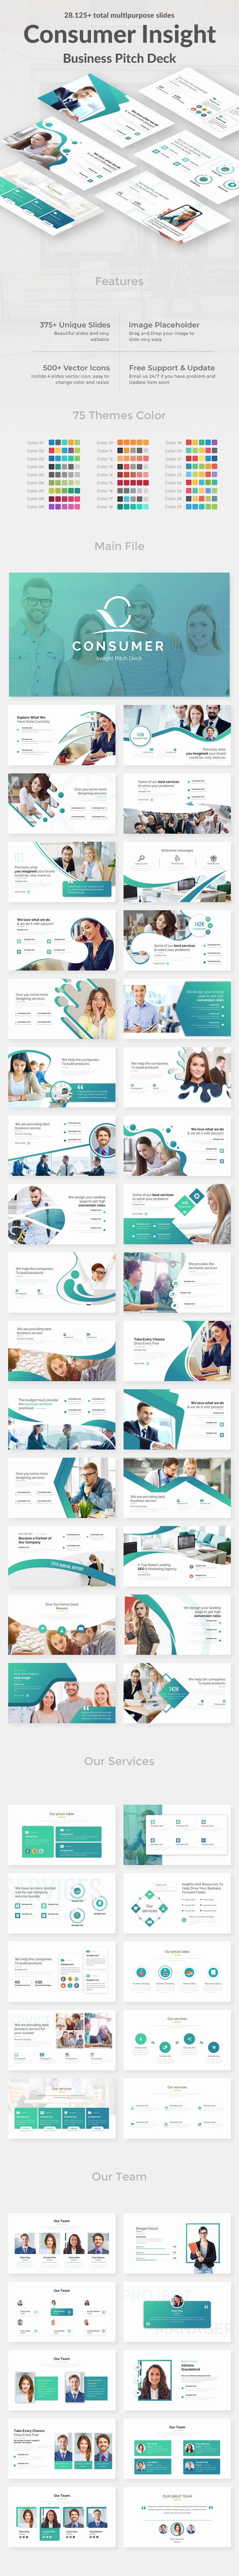 Consumer Insight Pitch Deck Powerpoint Template - Business PowerPoint Templates